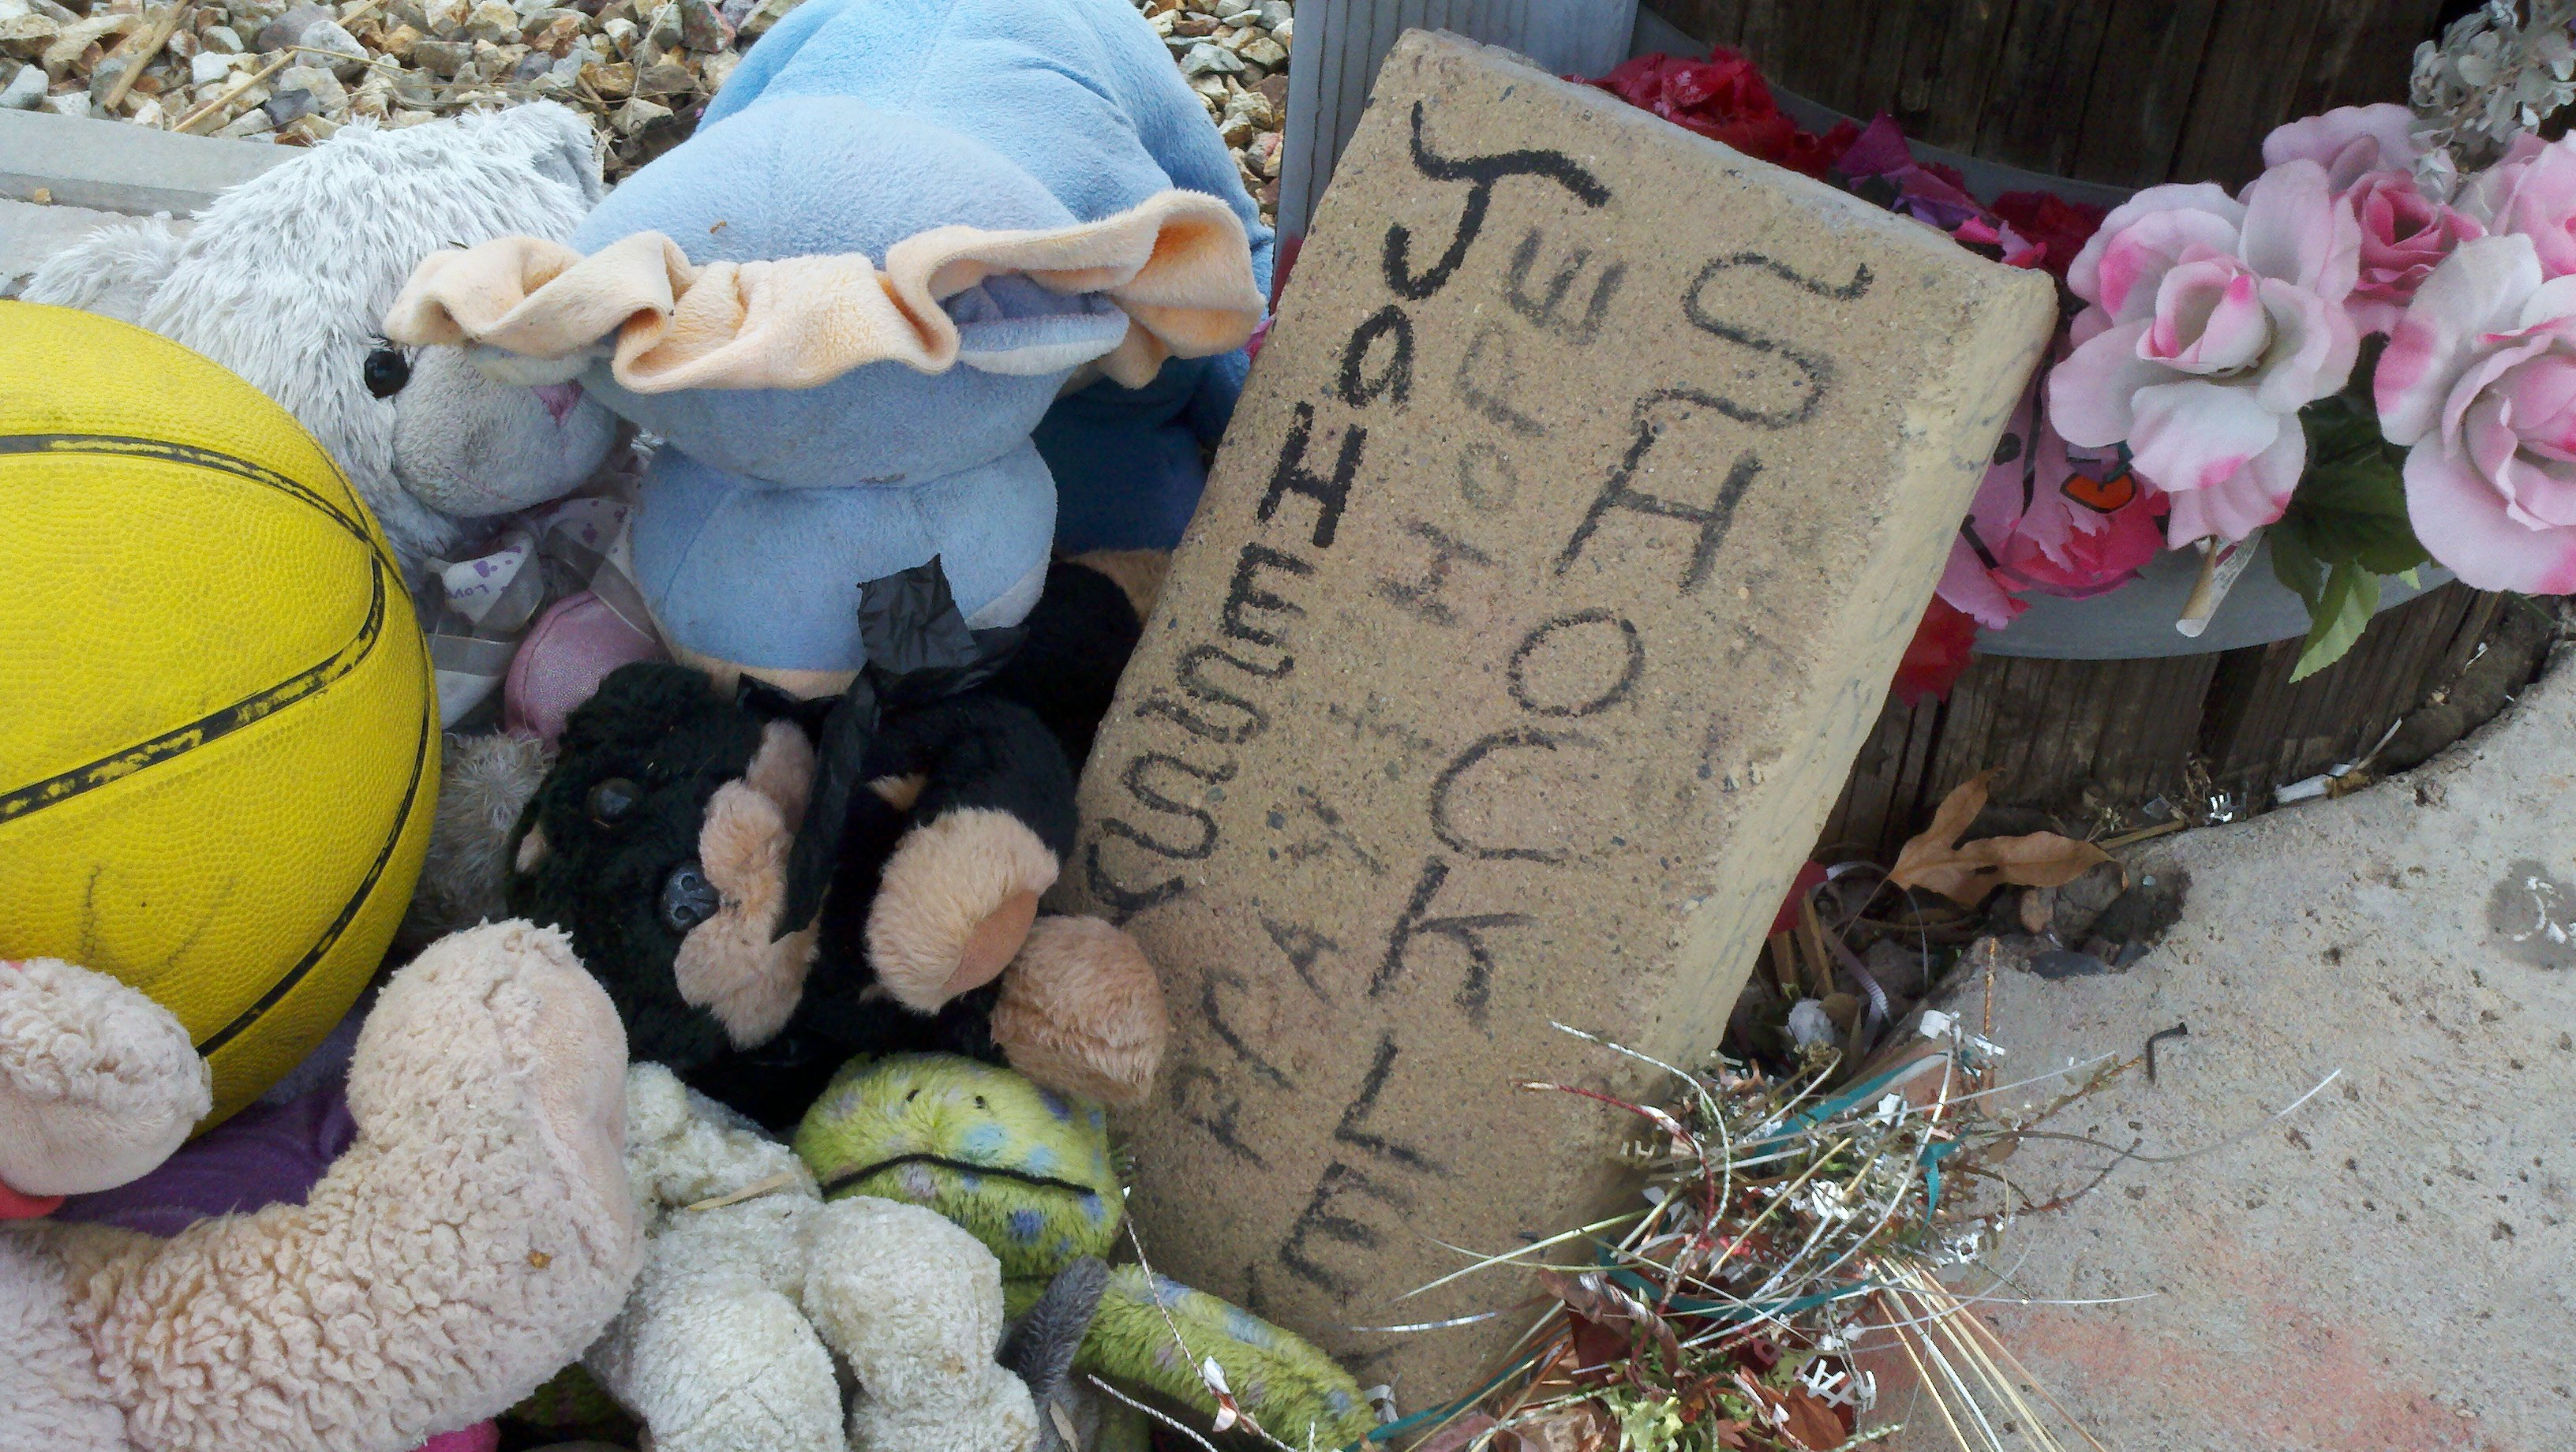 Memorial for 5-year-old Jhessye Shockley who was reported missing on Oct. 11, 2011.